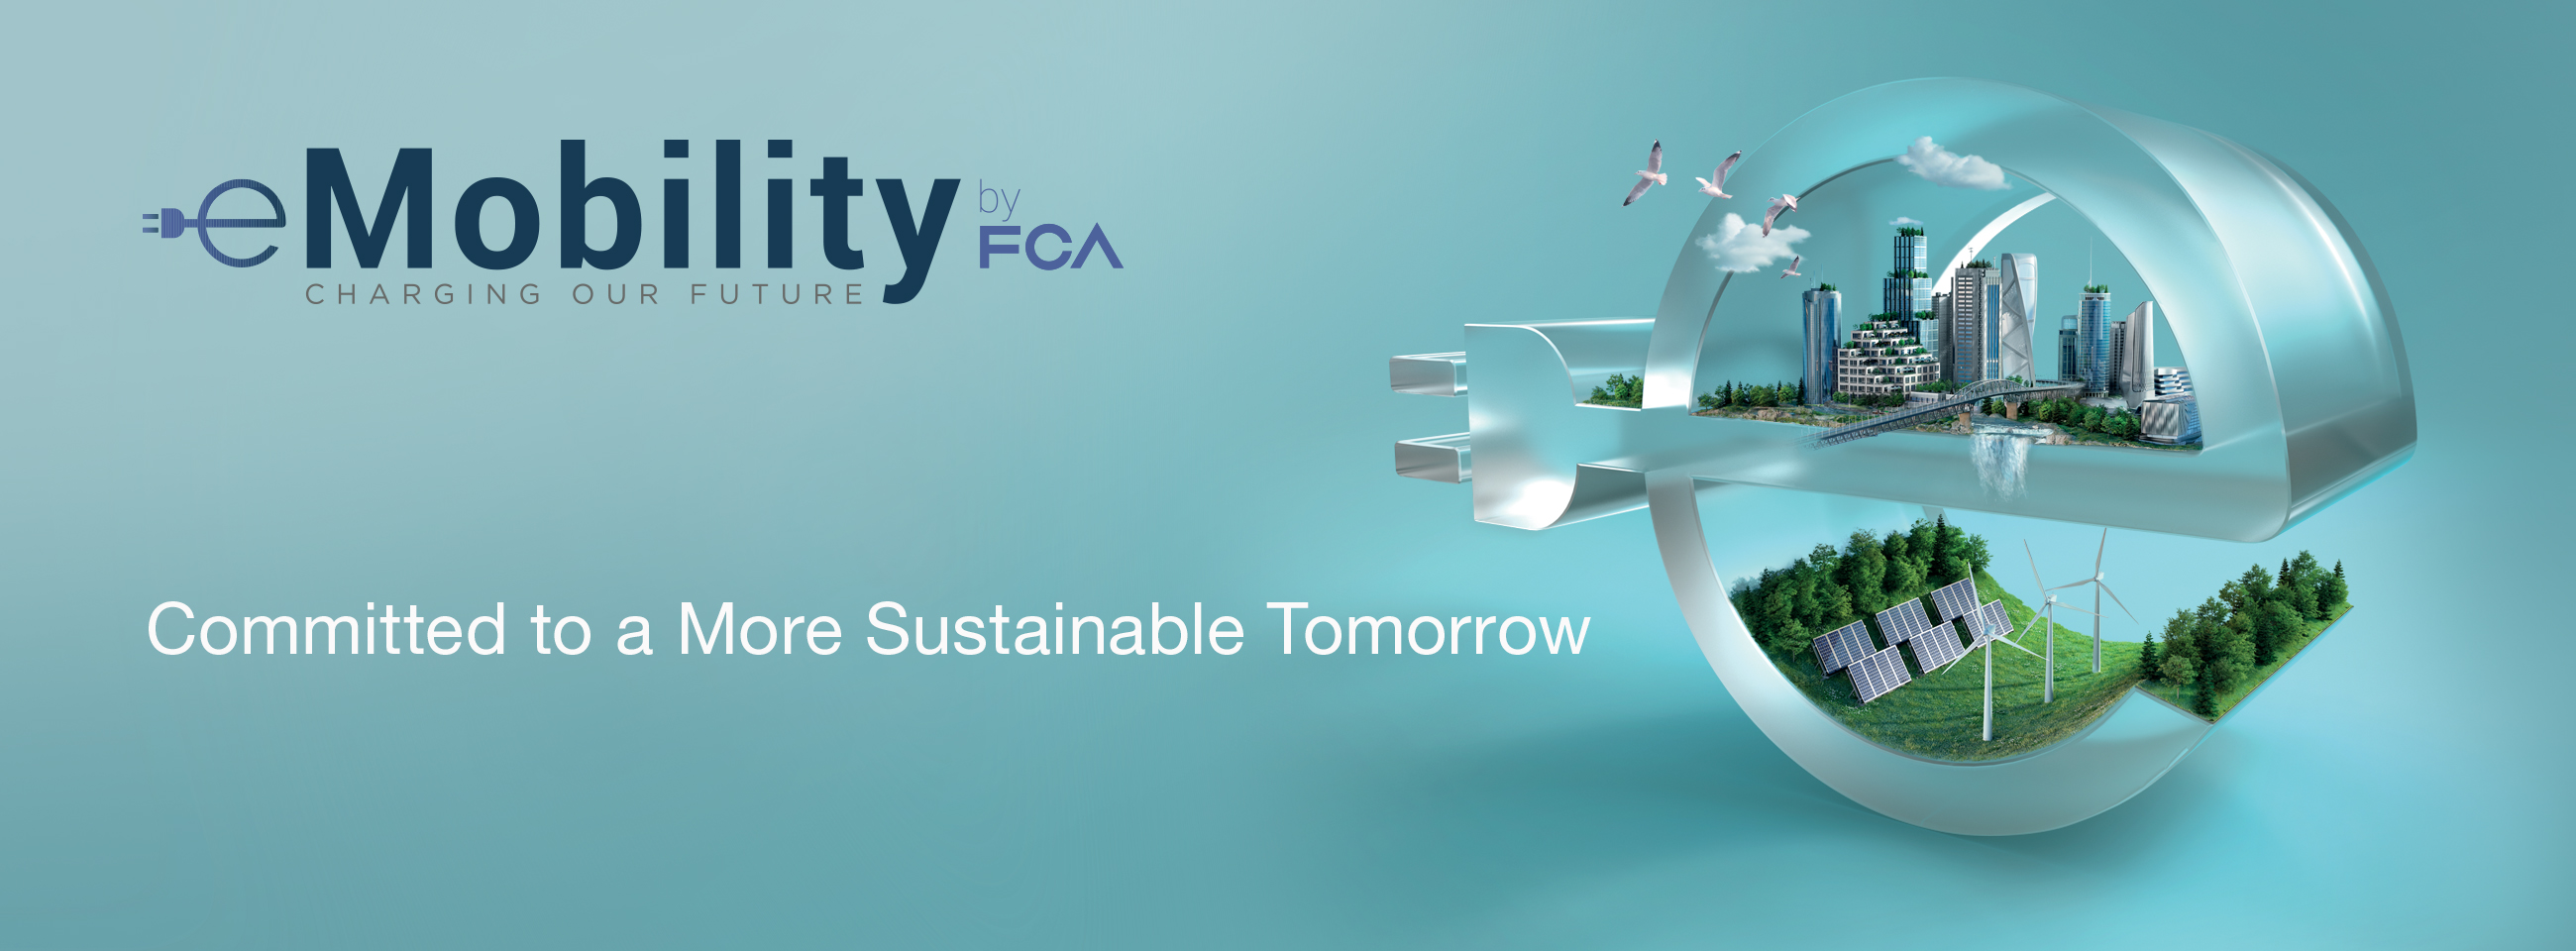 FCA eMobility canvas: Committed to a More Sustainable Tomorrow